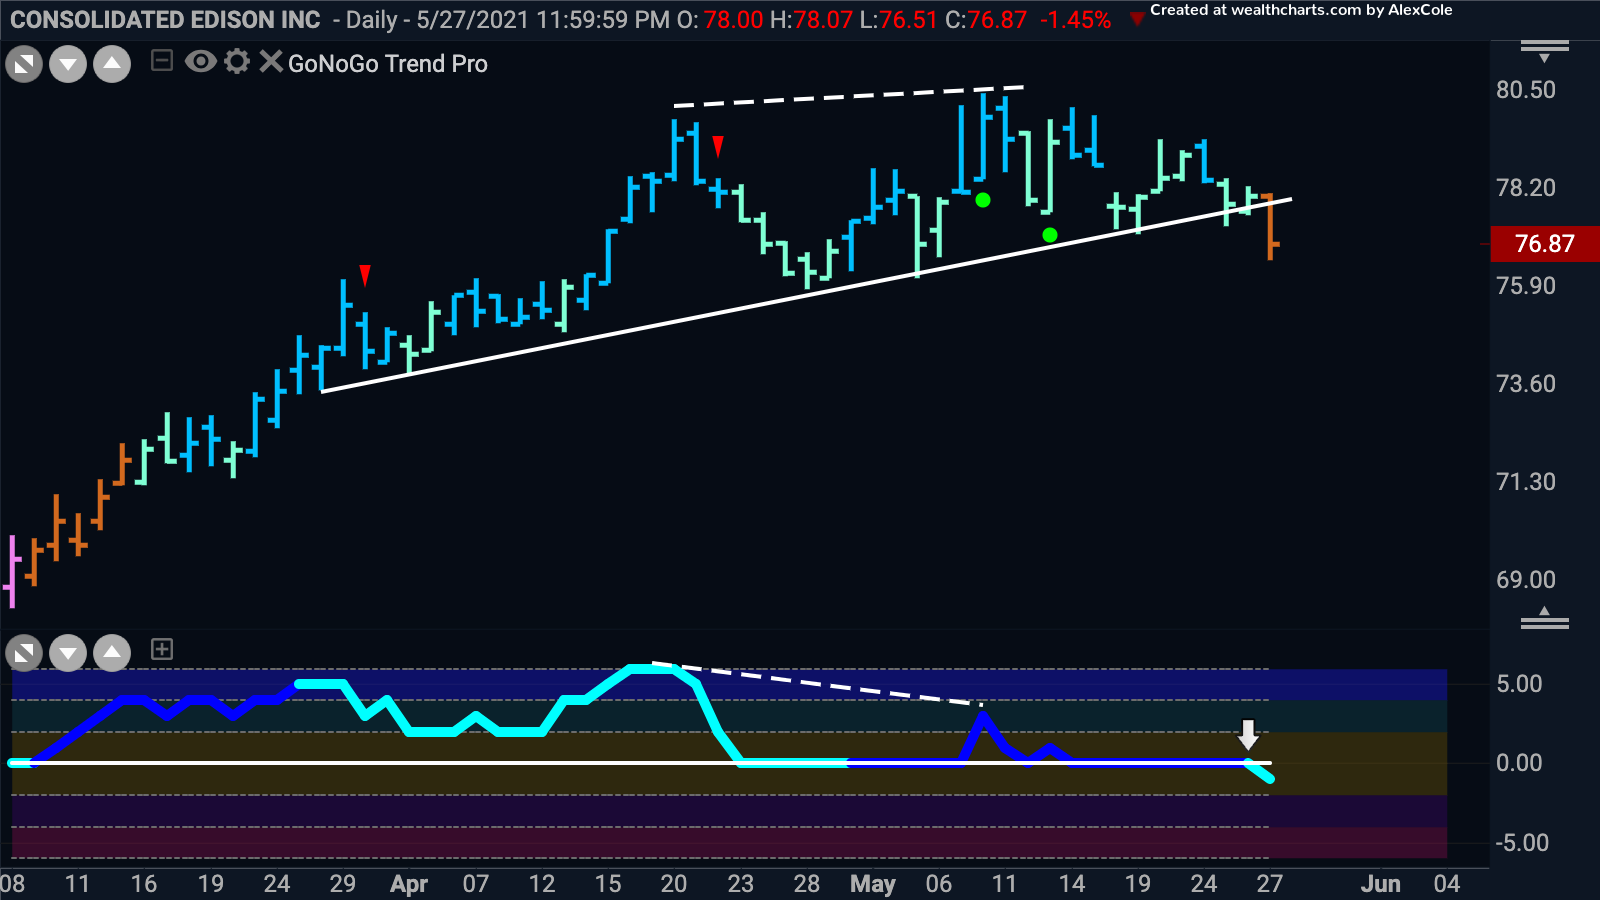 """Consolidated Edison """"Go"""" trend in trouble"""